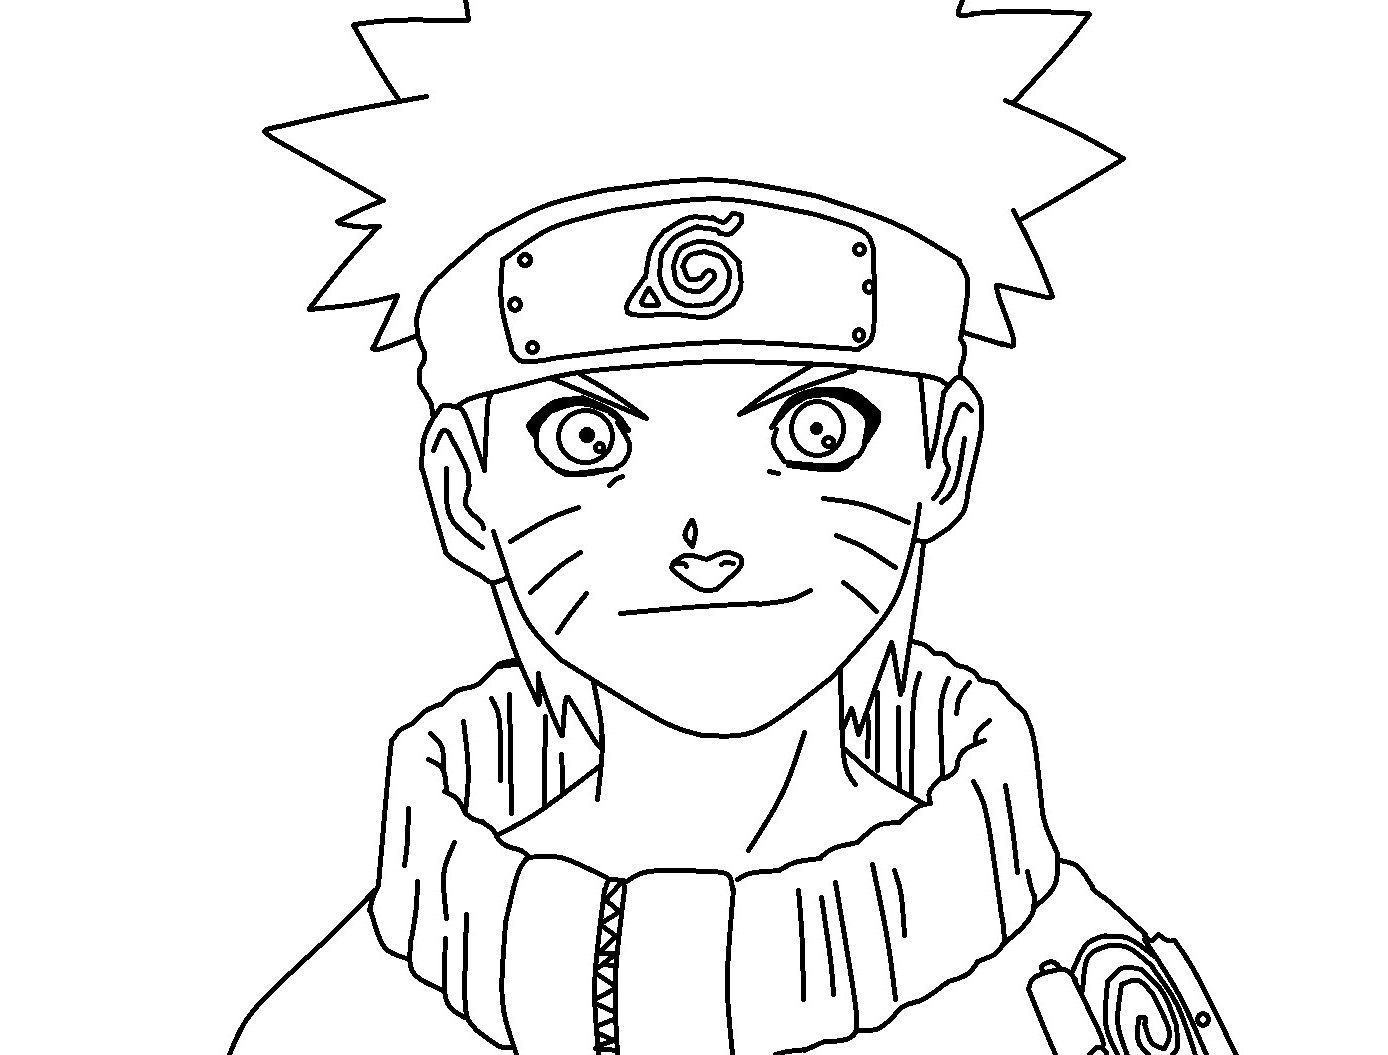 Naruto Coloring Page With Shadow Naruto Coloring Page With